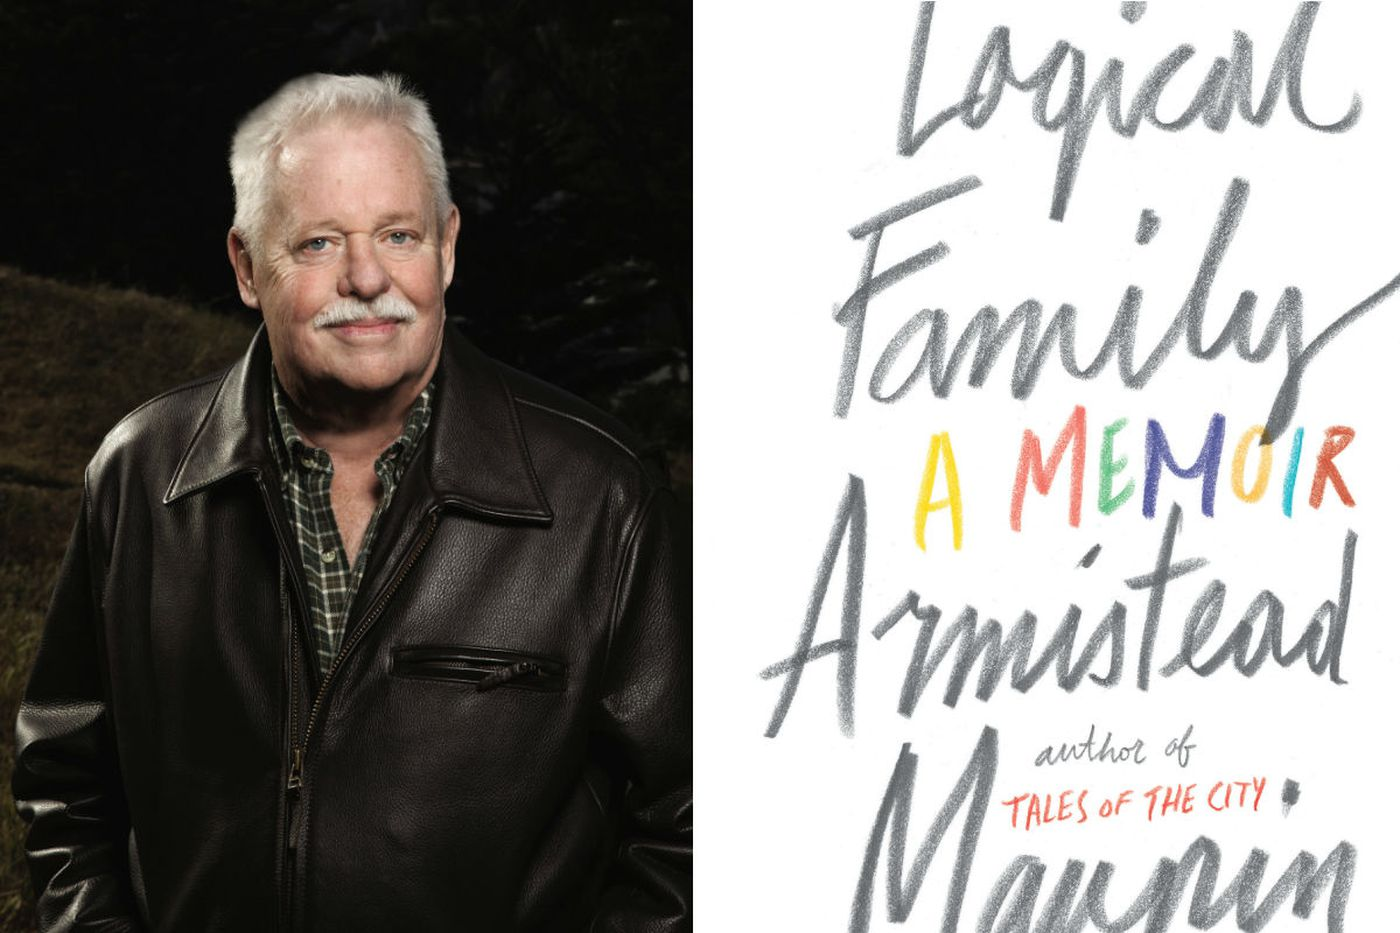 'Tales of the City' 's Armistead Maupin narrates his San Francisco roots in 'Logical Family'